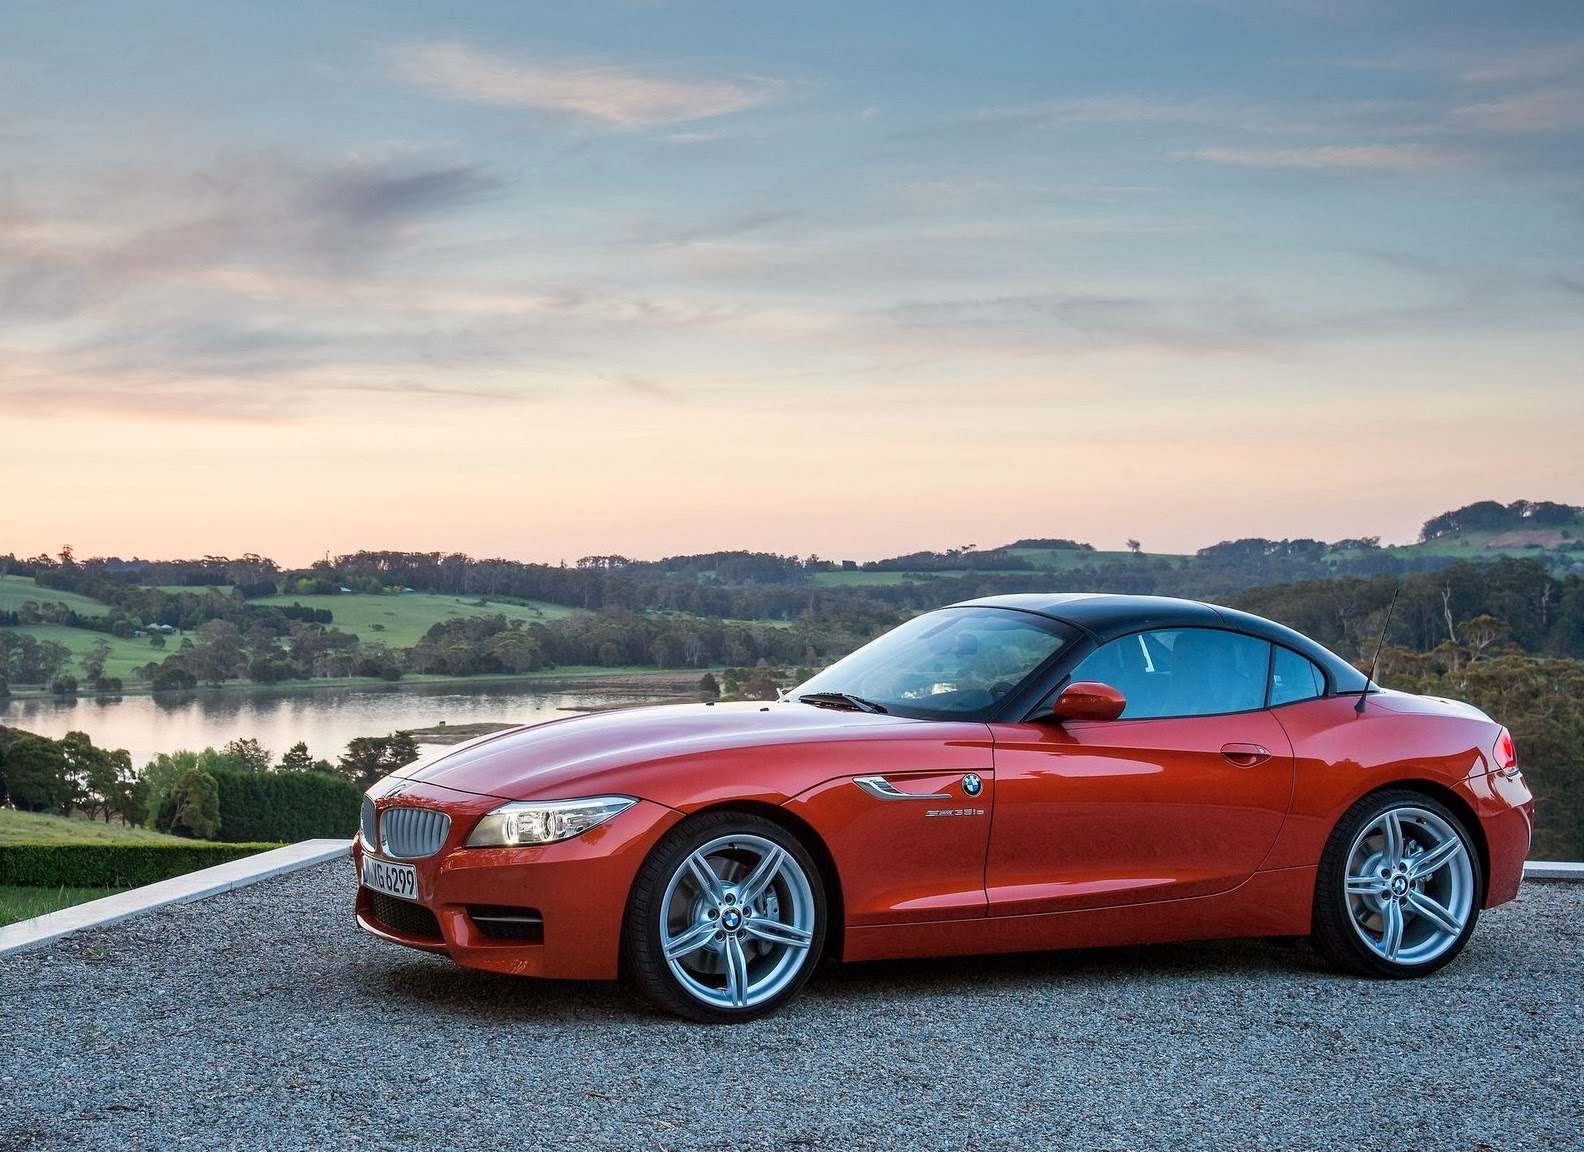 All hot informations download bmw z4 roadster cars hd - Bmw cars wallpapers hd free download ...